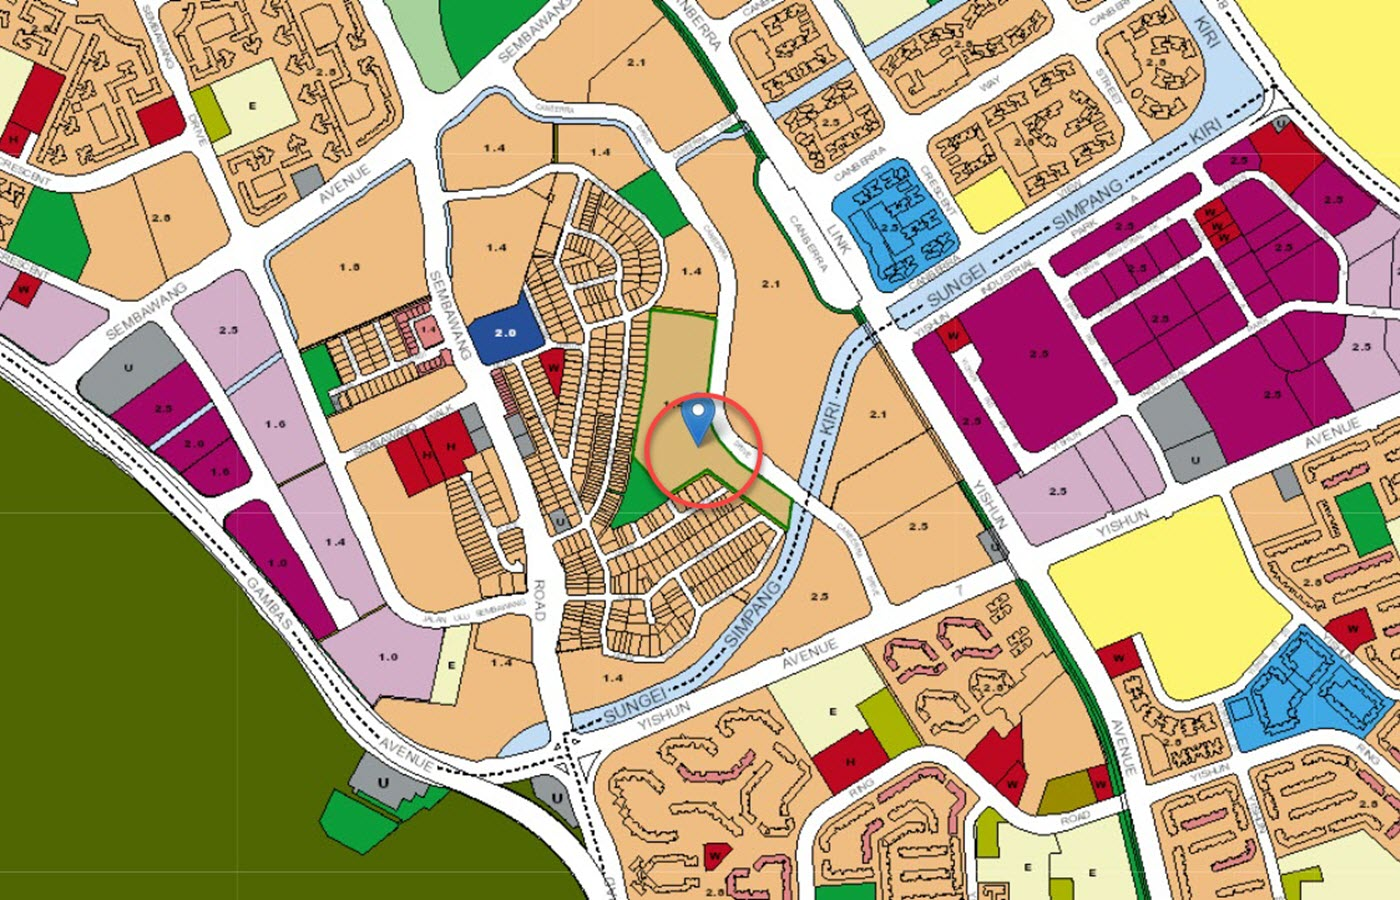 The Watergardens At Canberra Condo Location - URA Master Plan Map